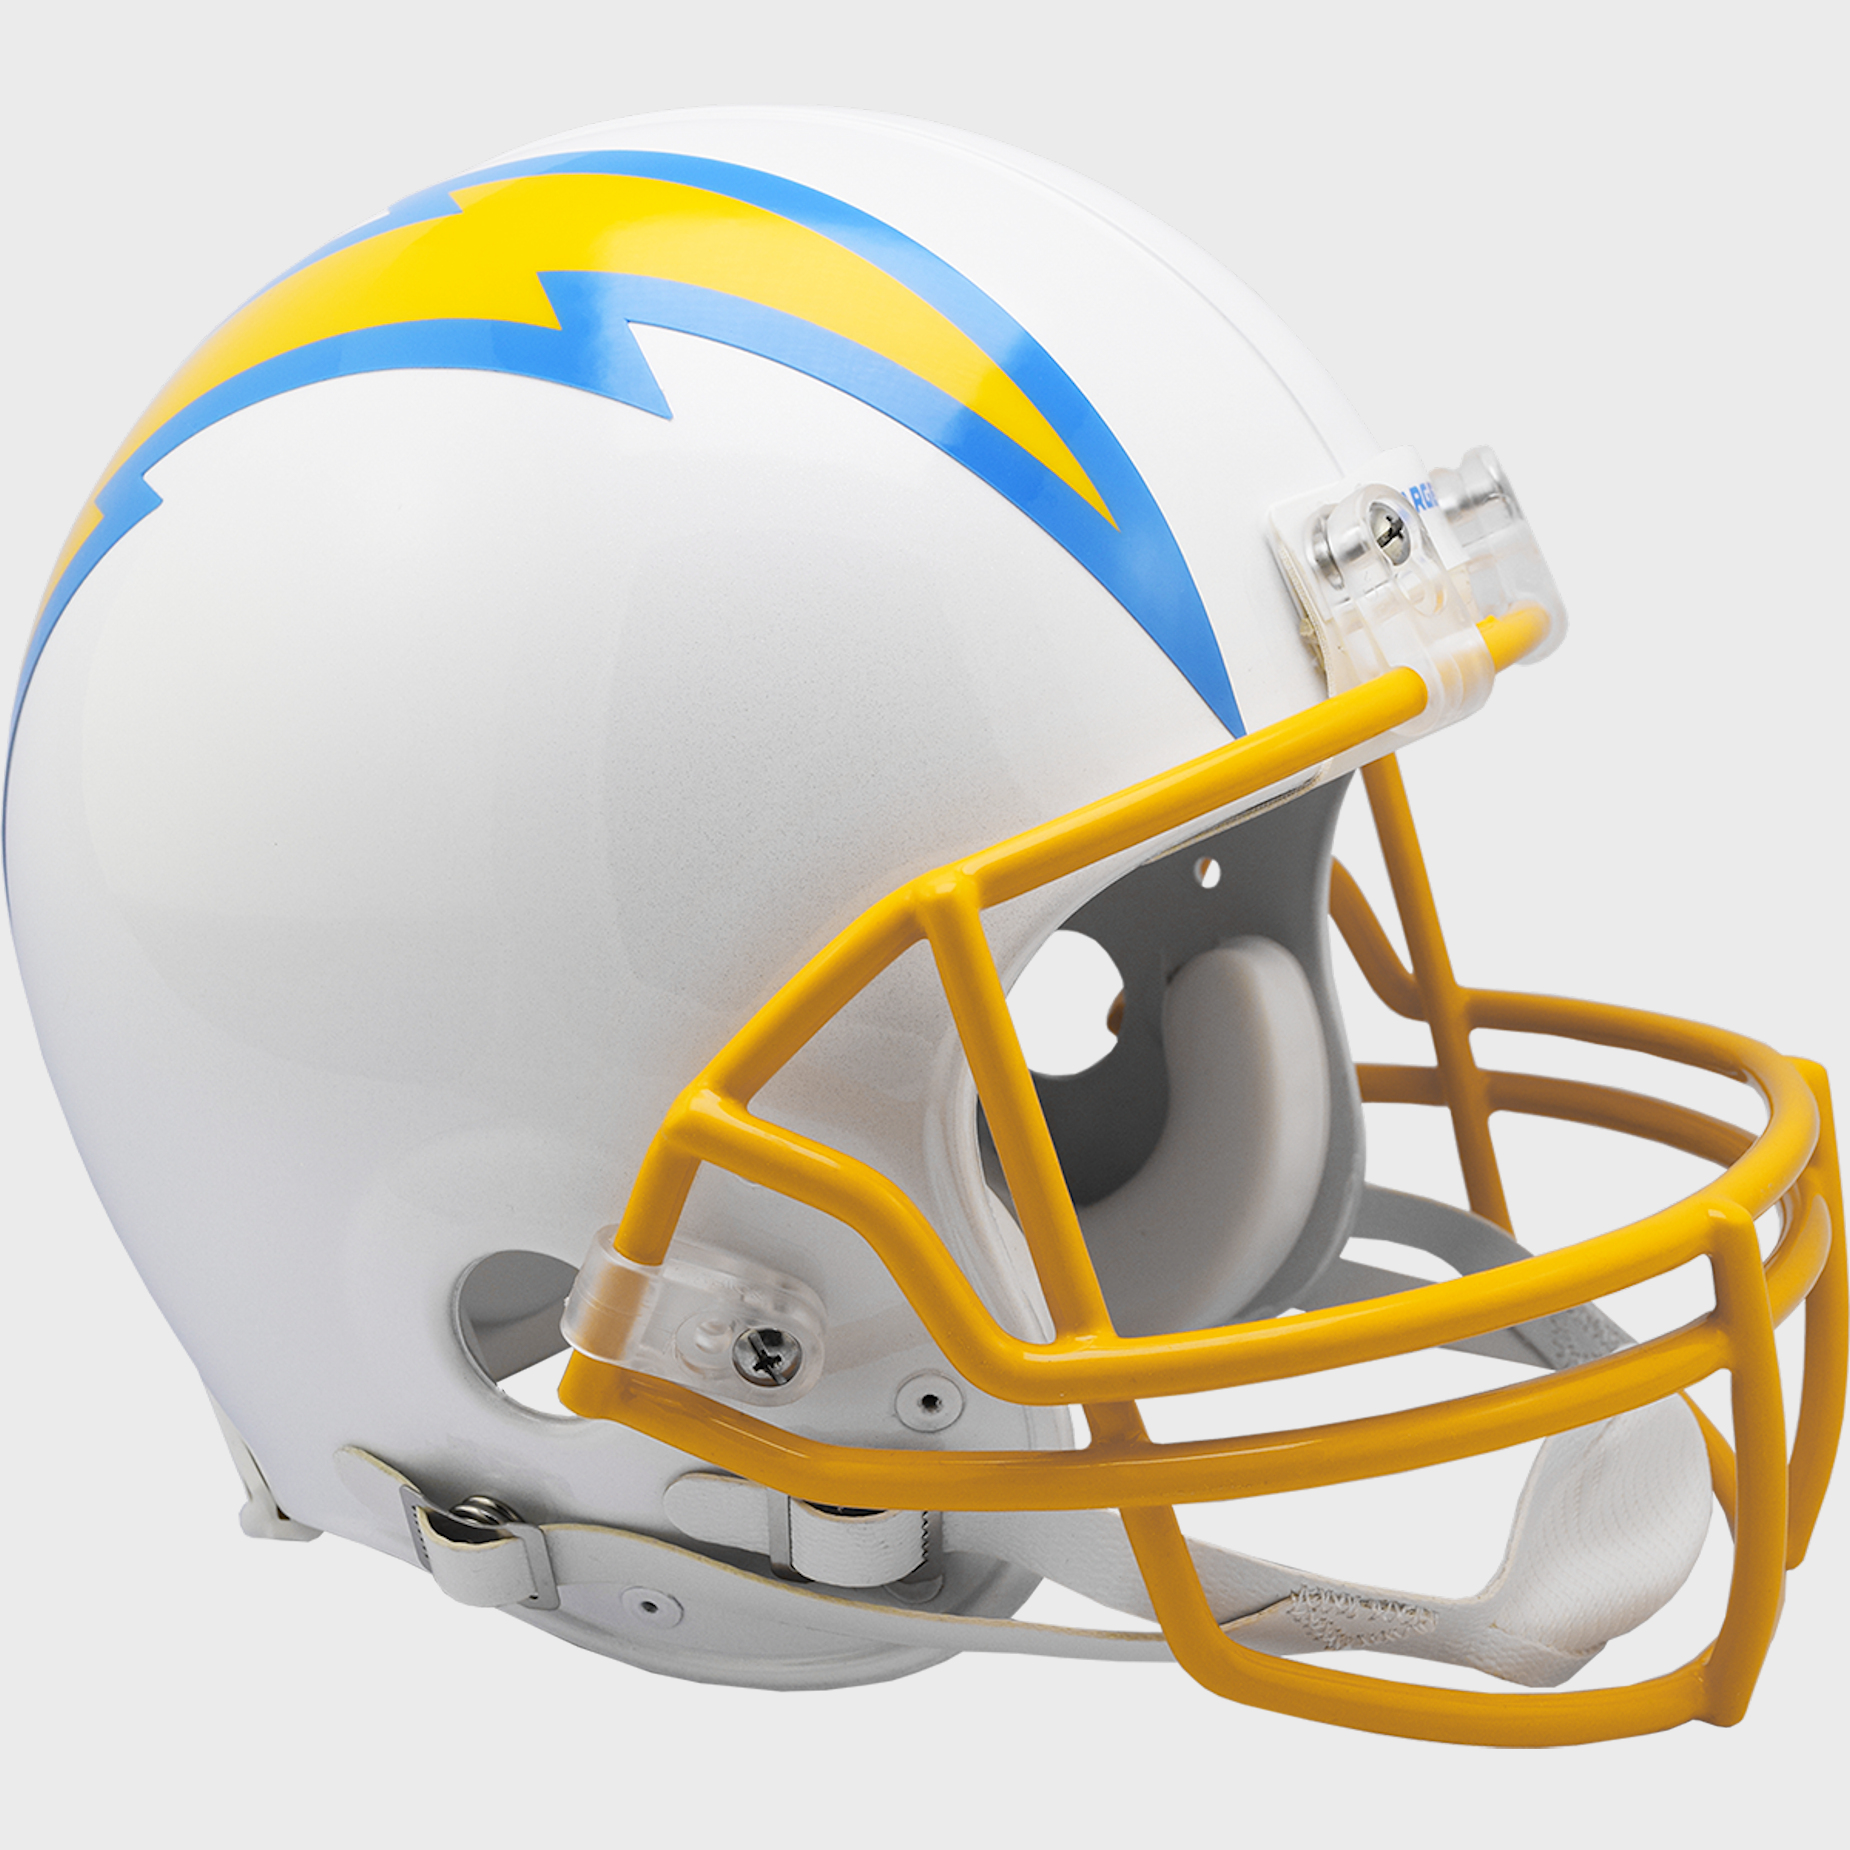 Los Angeles Chargers Football Helmet <B>NEW 2020</B>